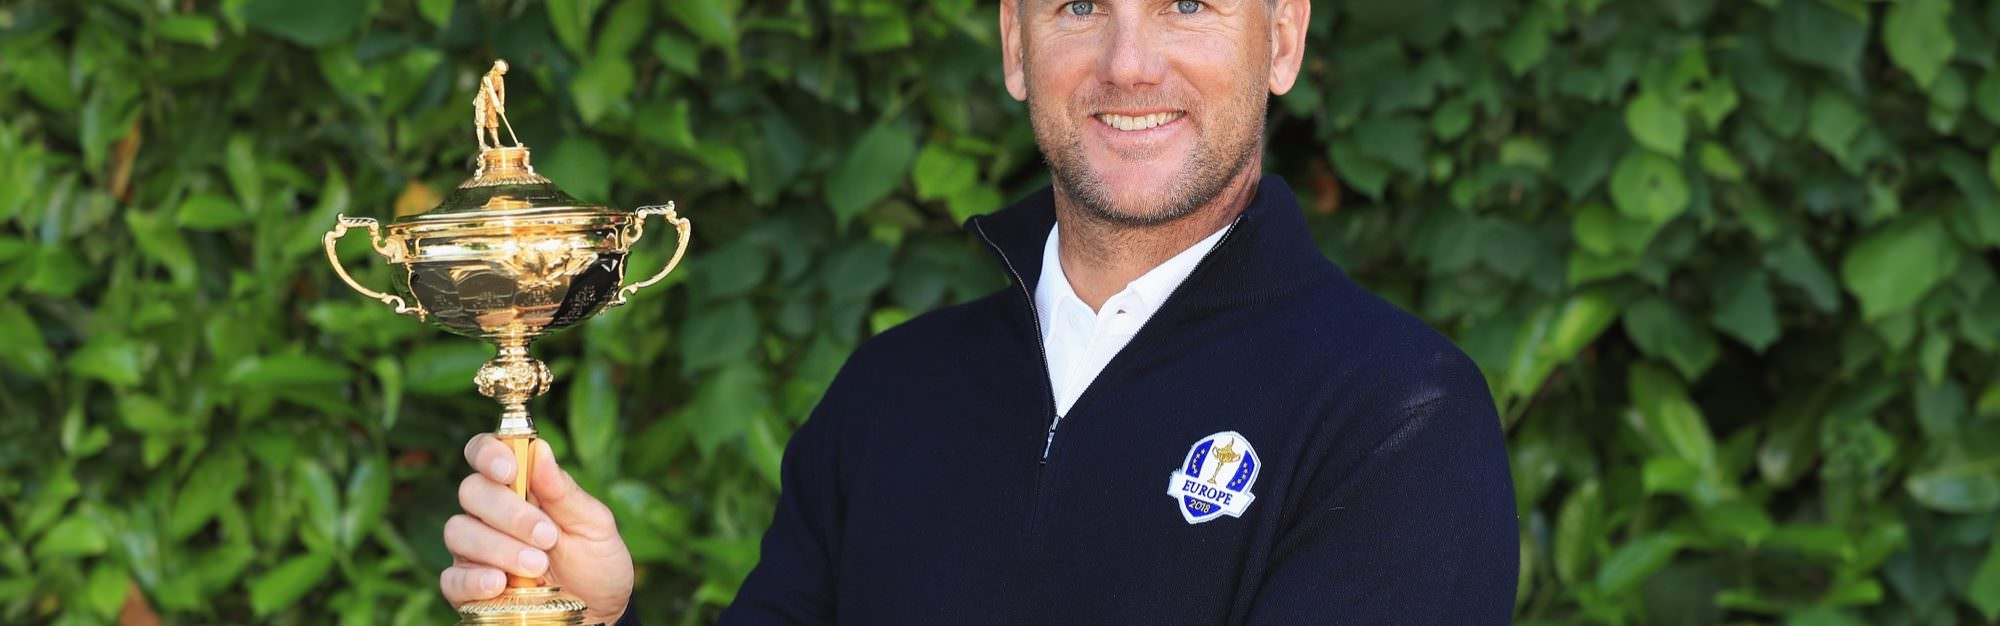 The inside story of how Europe regained the Ryder Cup